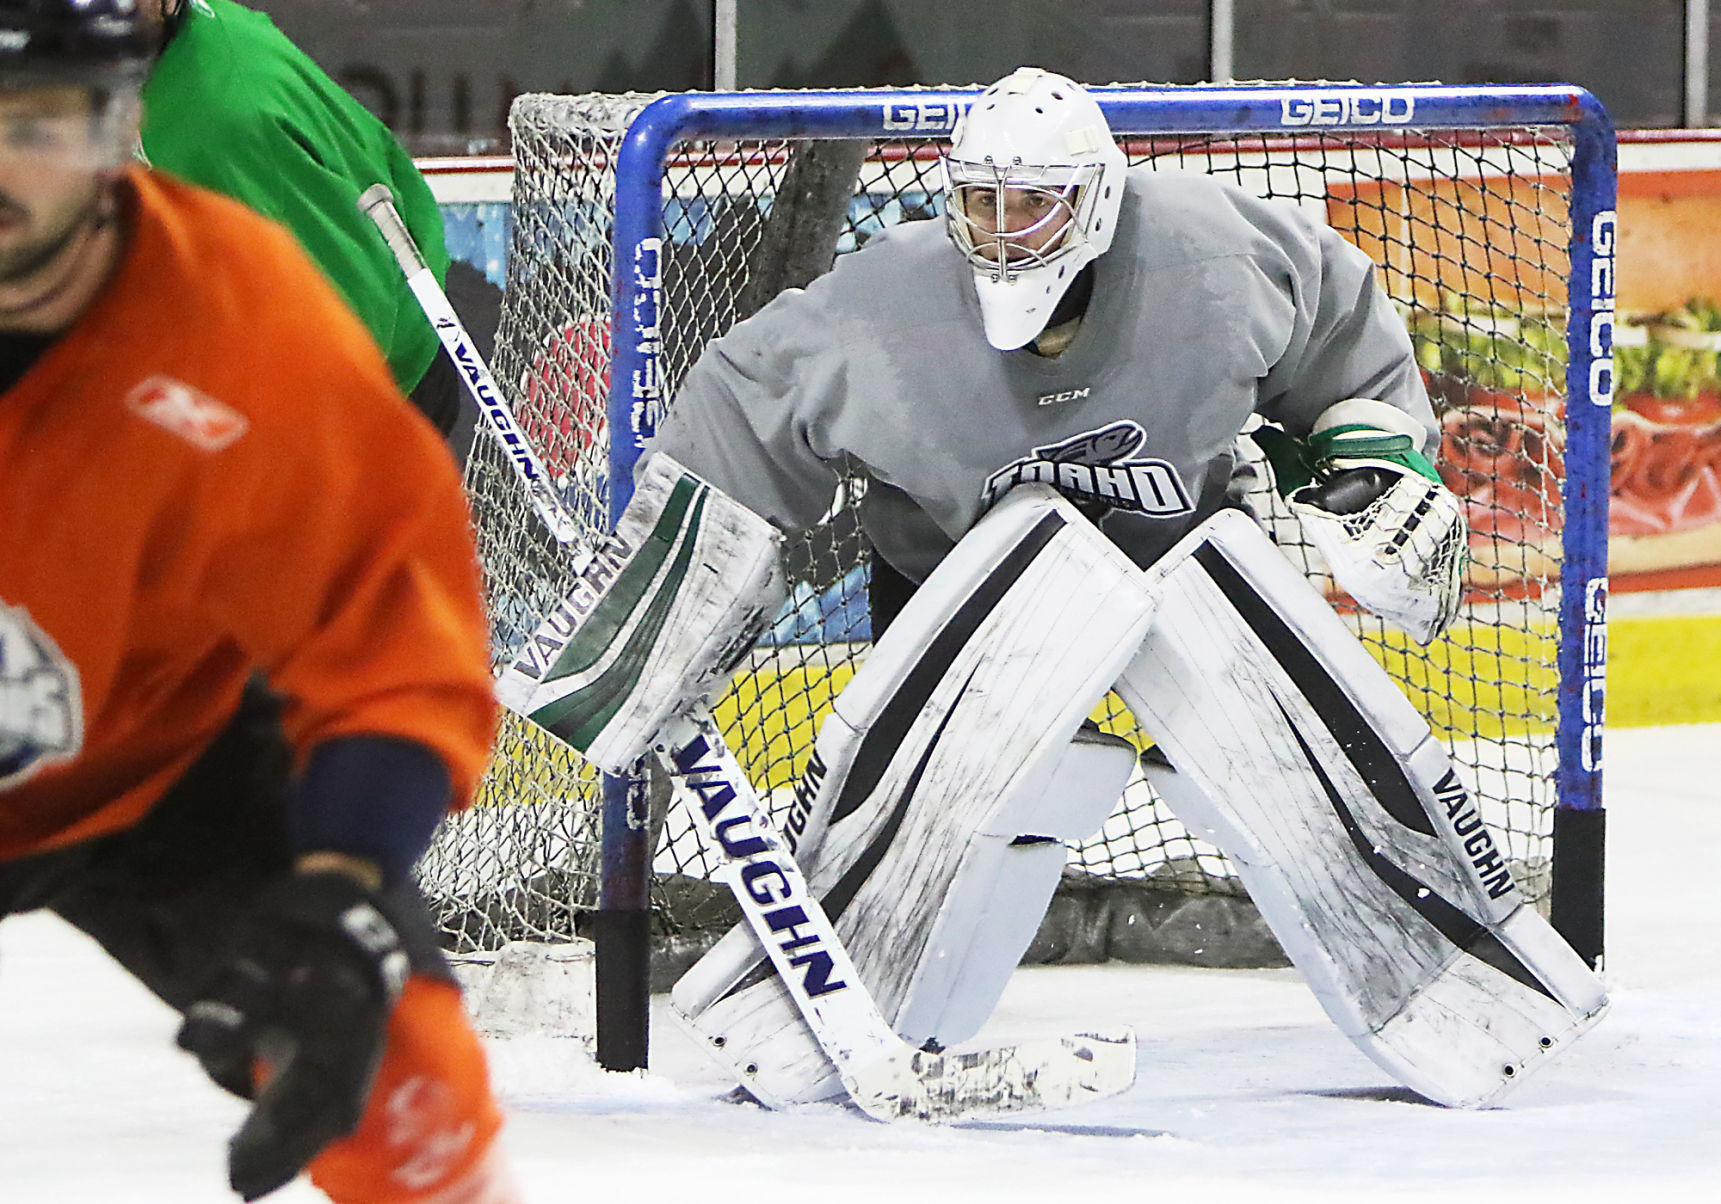 ECHL: After Nearly Giving Up Hockey, Sholl Shining In Net For Steelheads